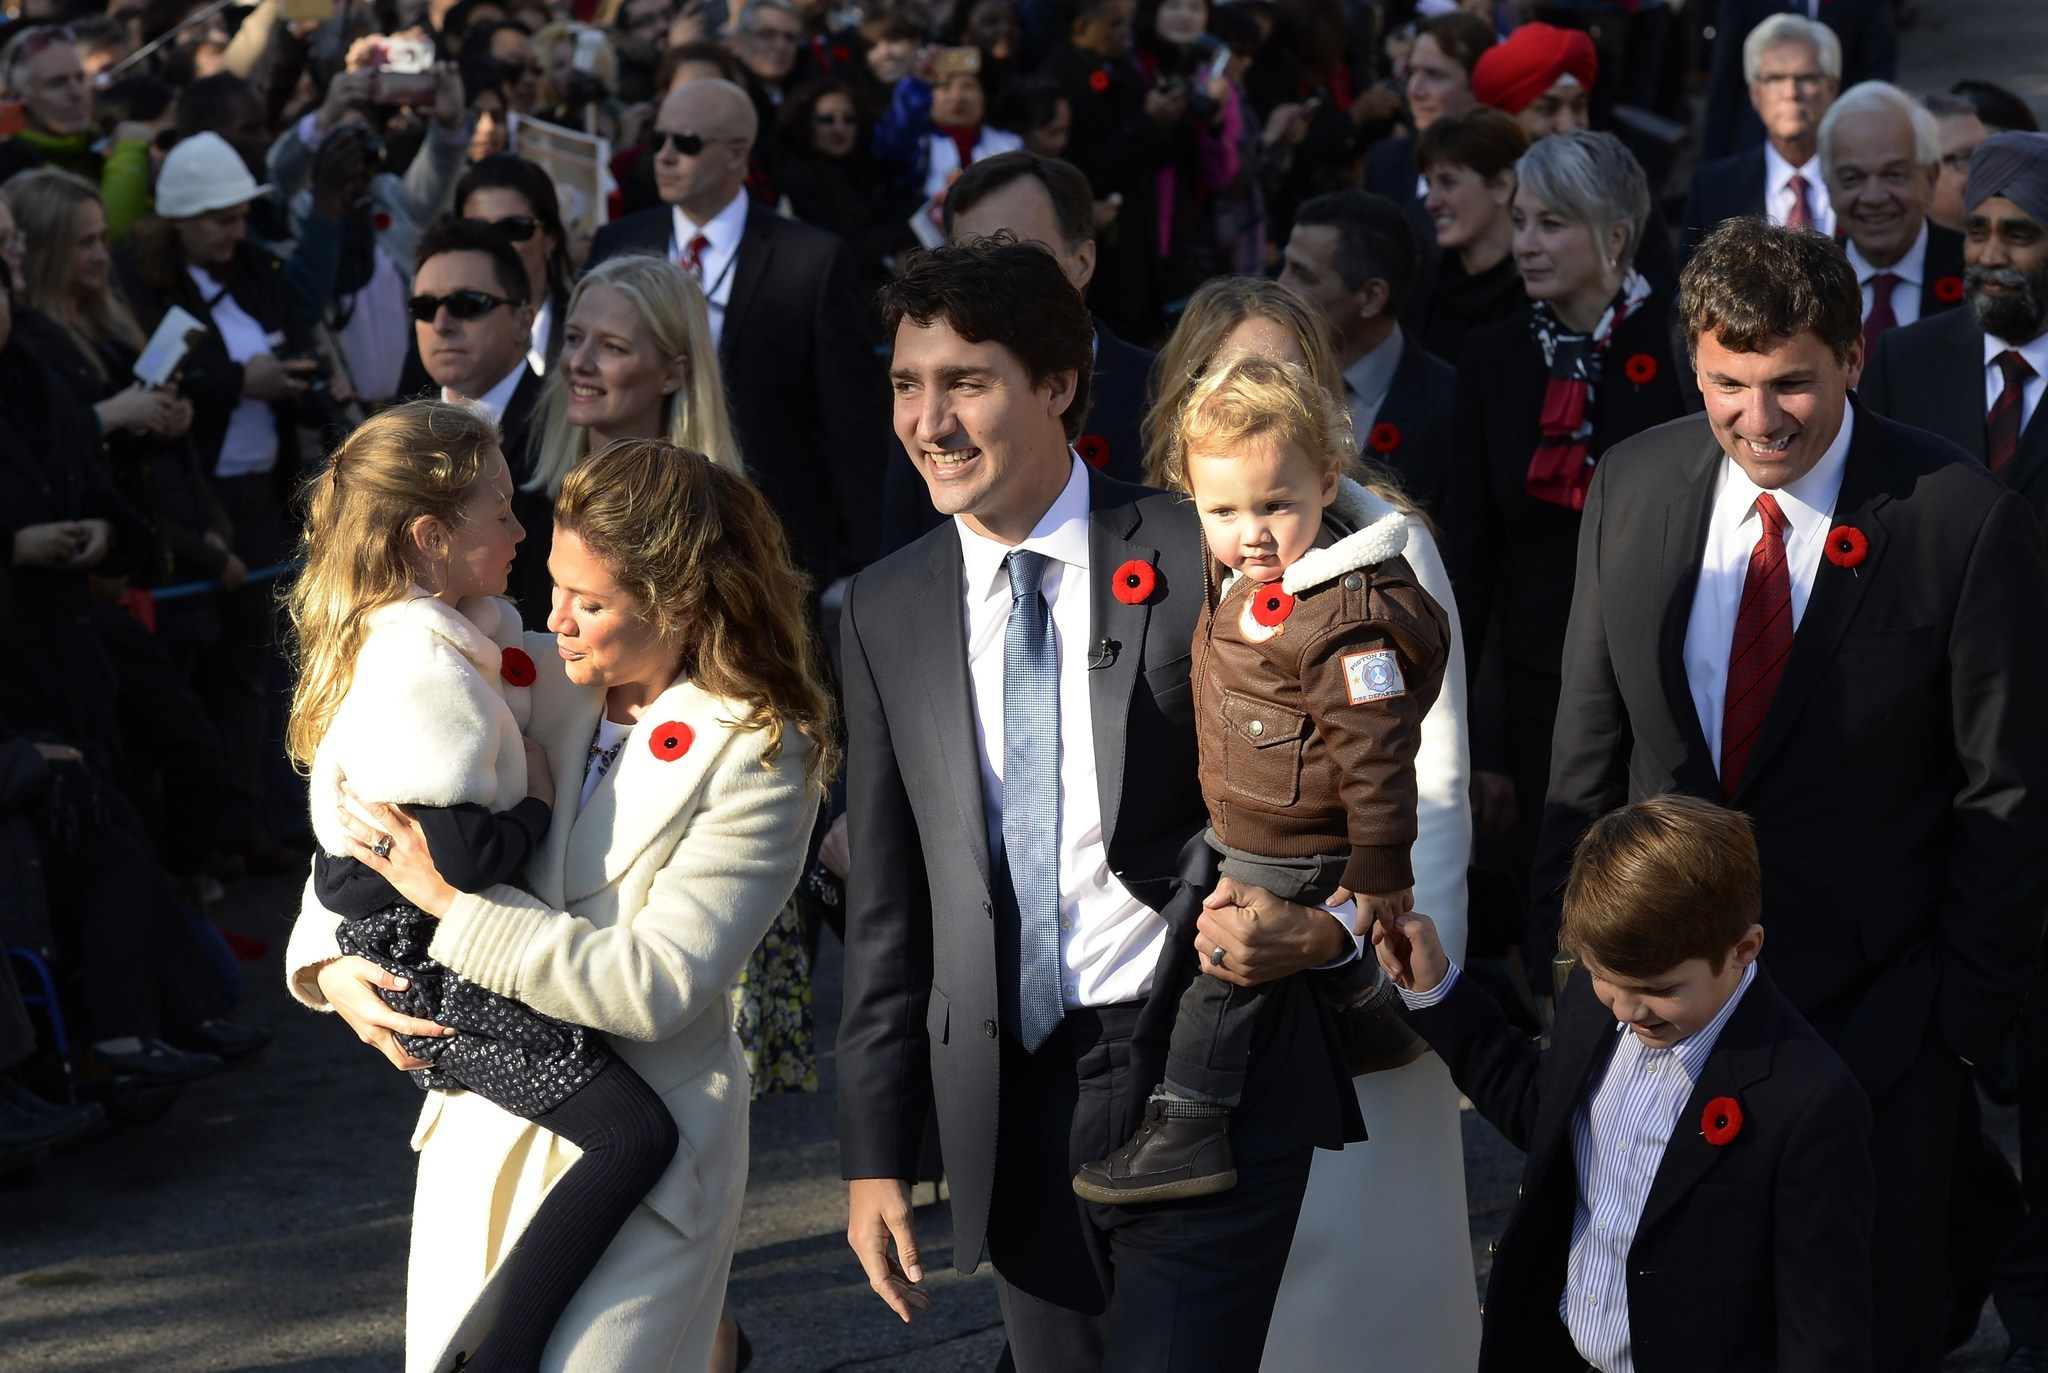 Climate Change Among New Canadian Prime Minister Trudeau S